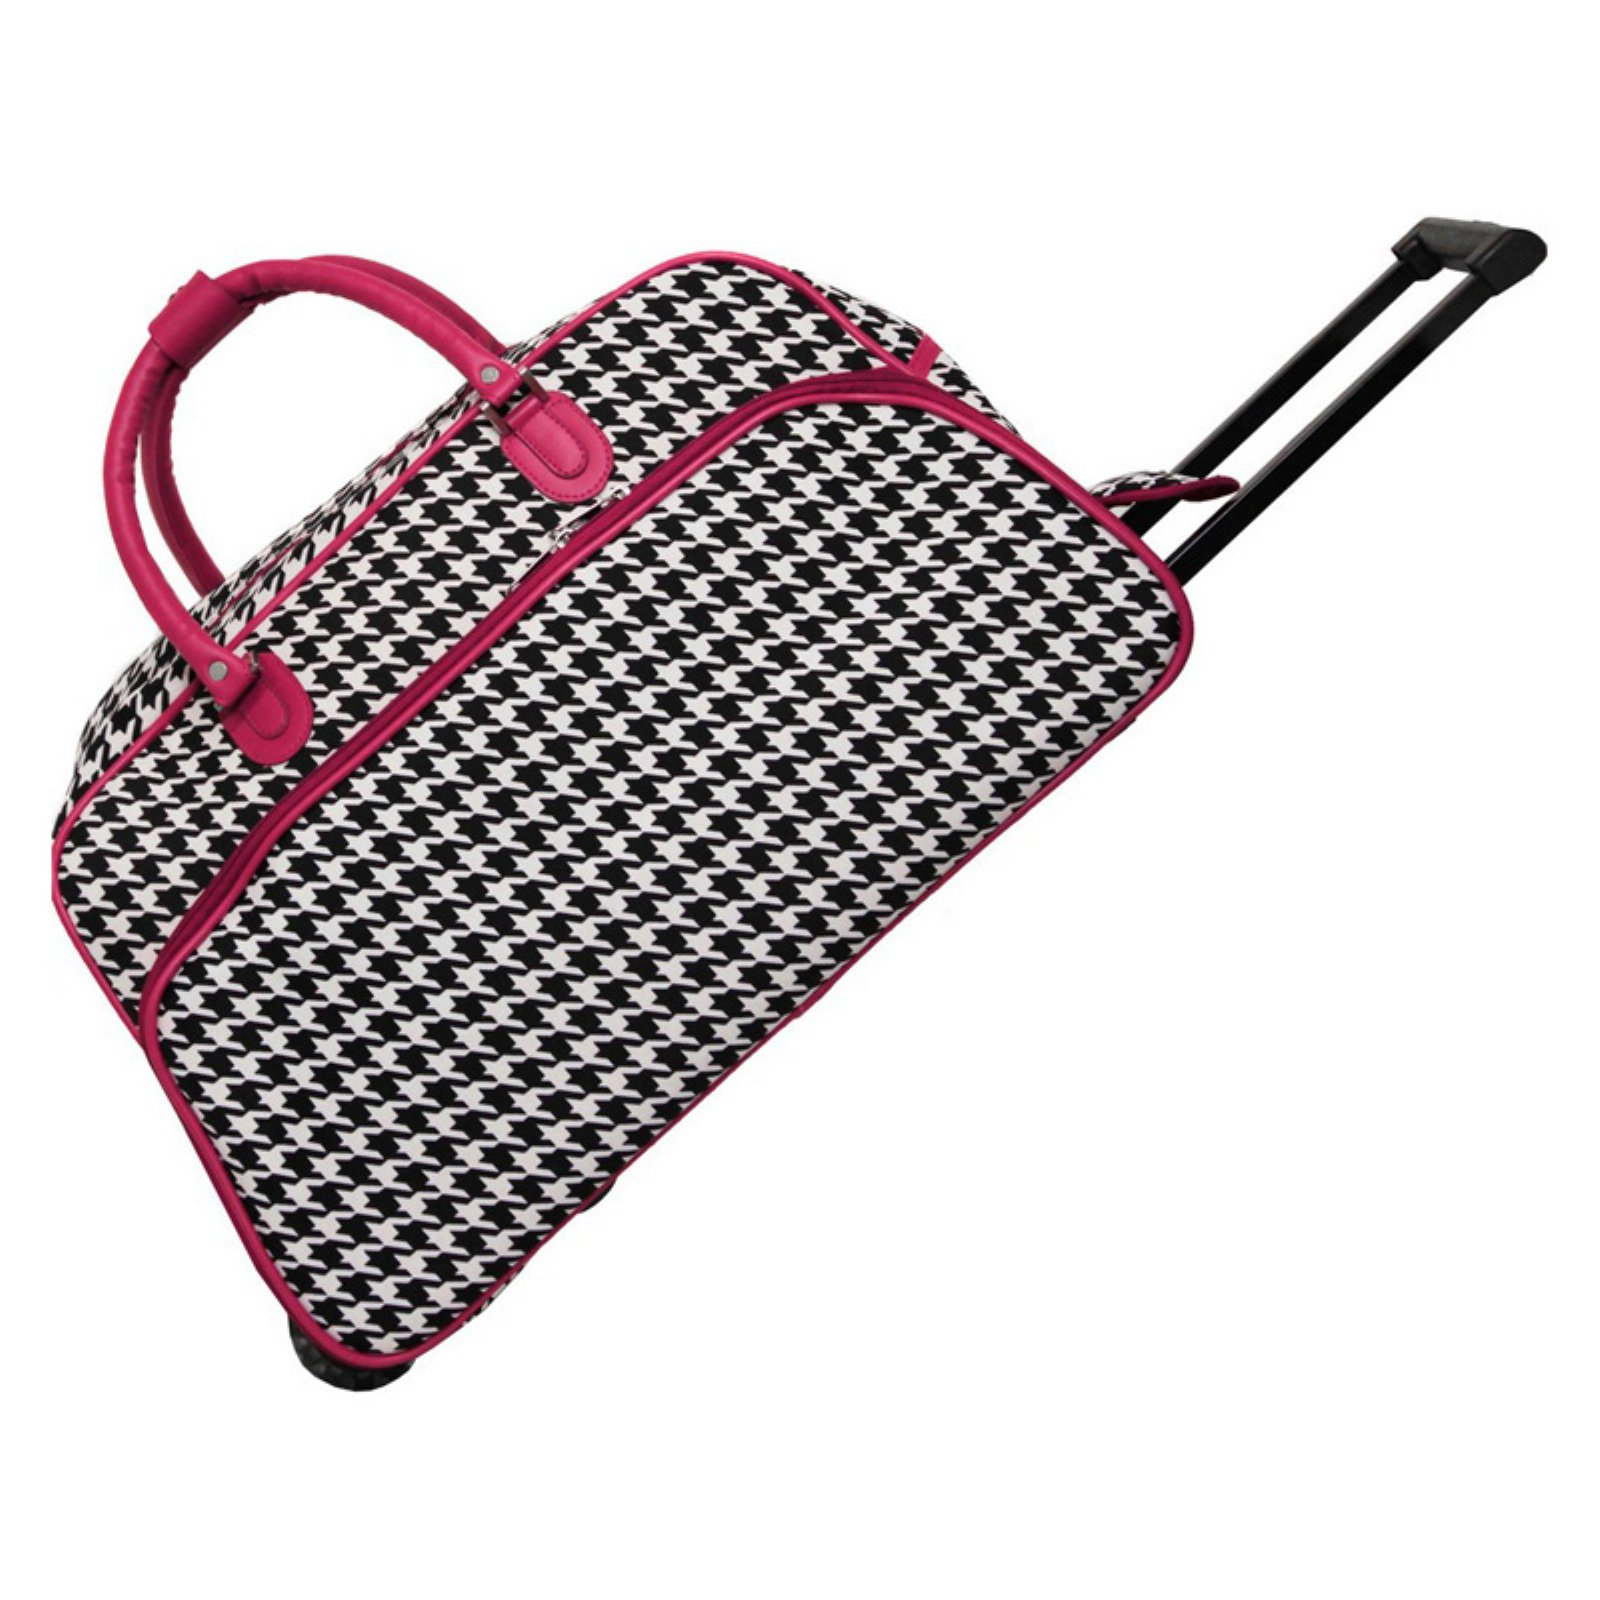 World Traveler Houndstooth 21 in. Rolling Duffel Bag